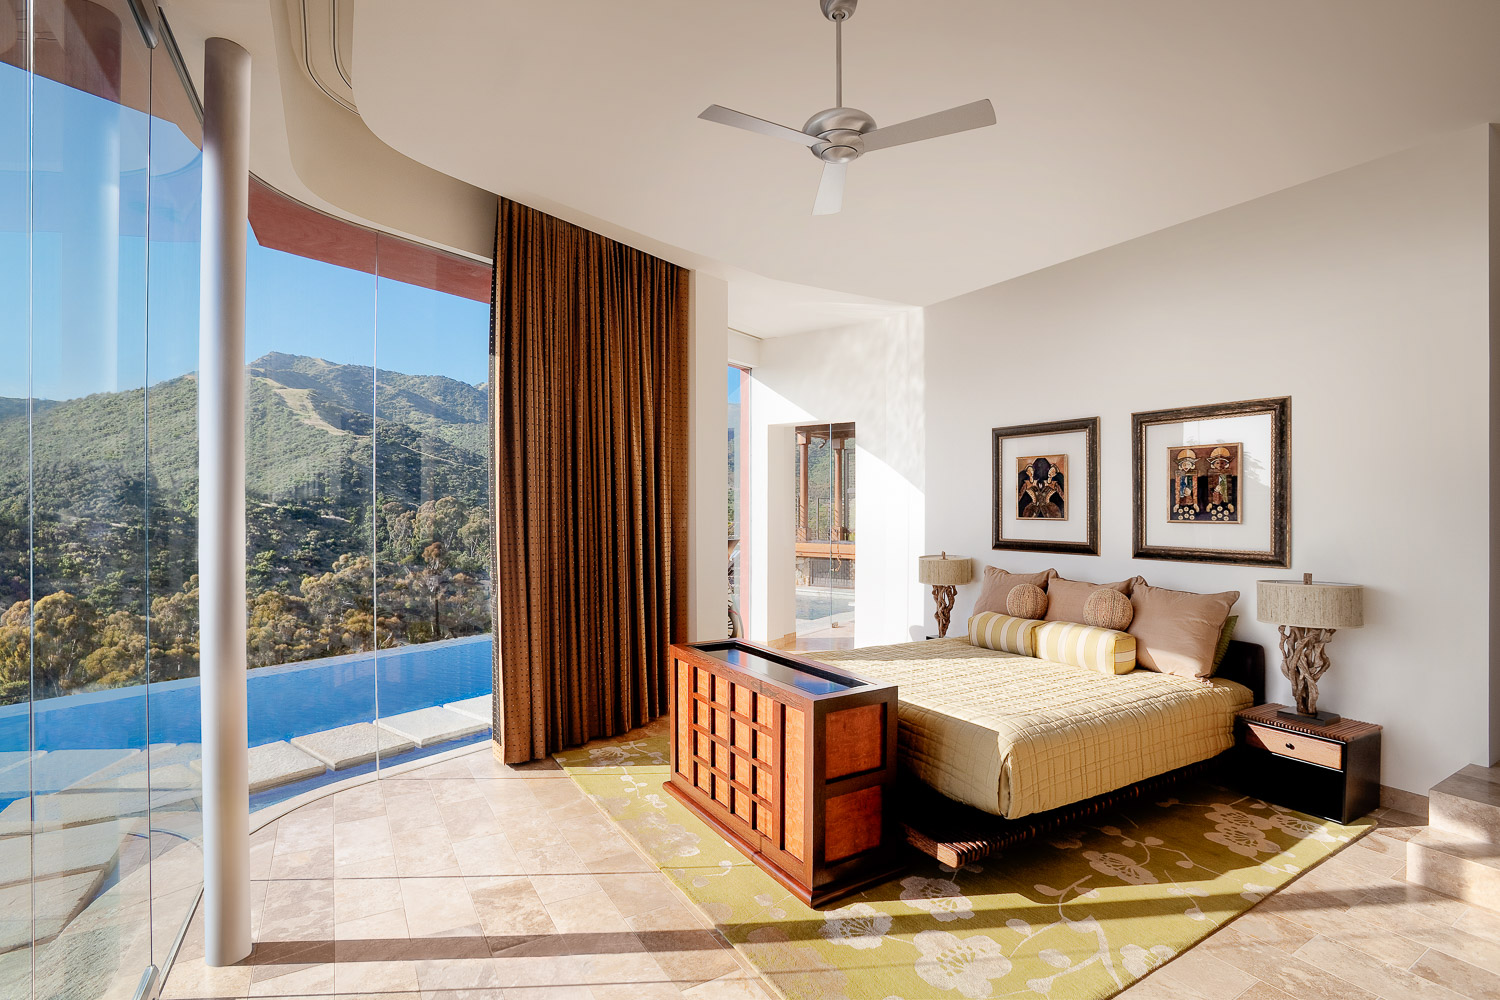 005 Catalina Island Private Residence.jpg